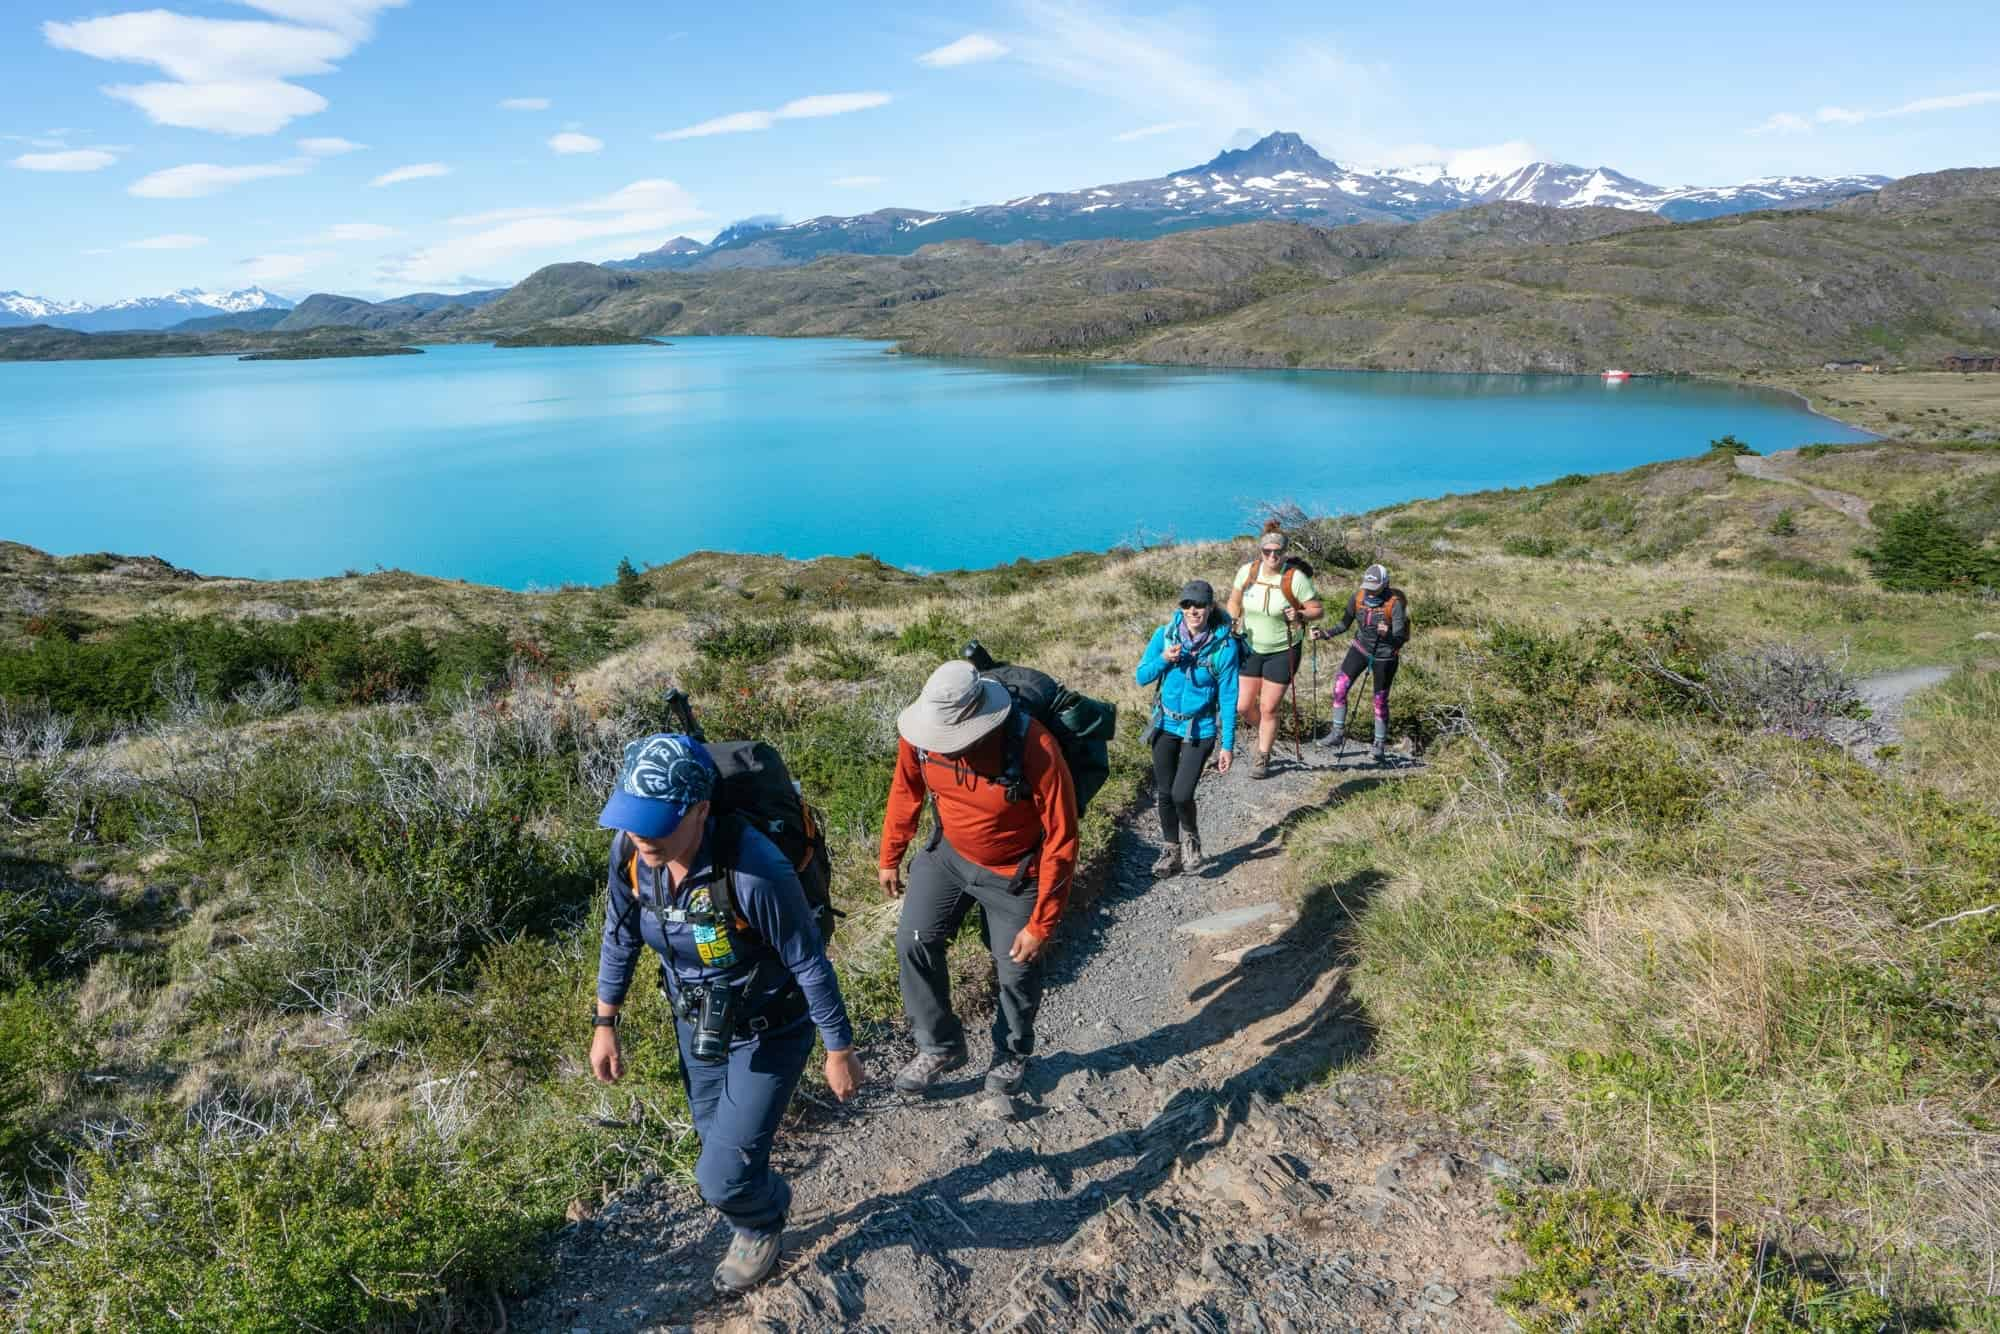 Want to hike the W Trek in Torres Del Paine? Use our guide to plan this bucket-list trail in Patagonia complete with itinerary, gear, and campsite tips.